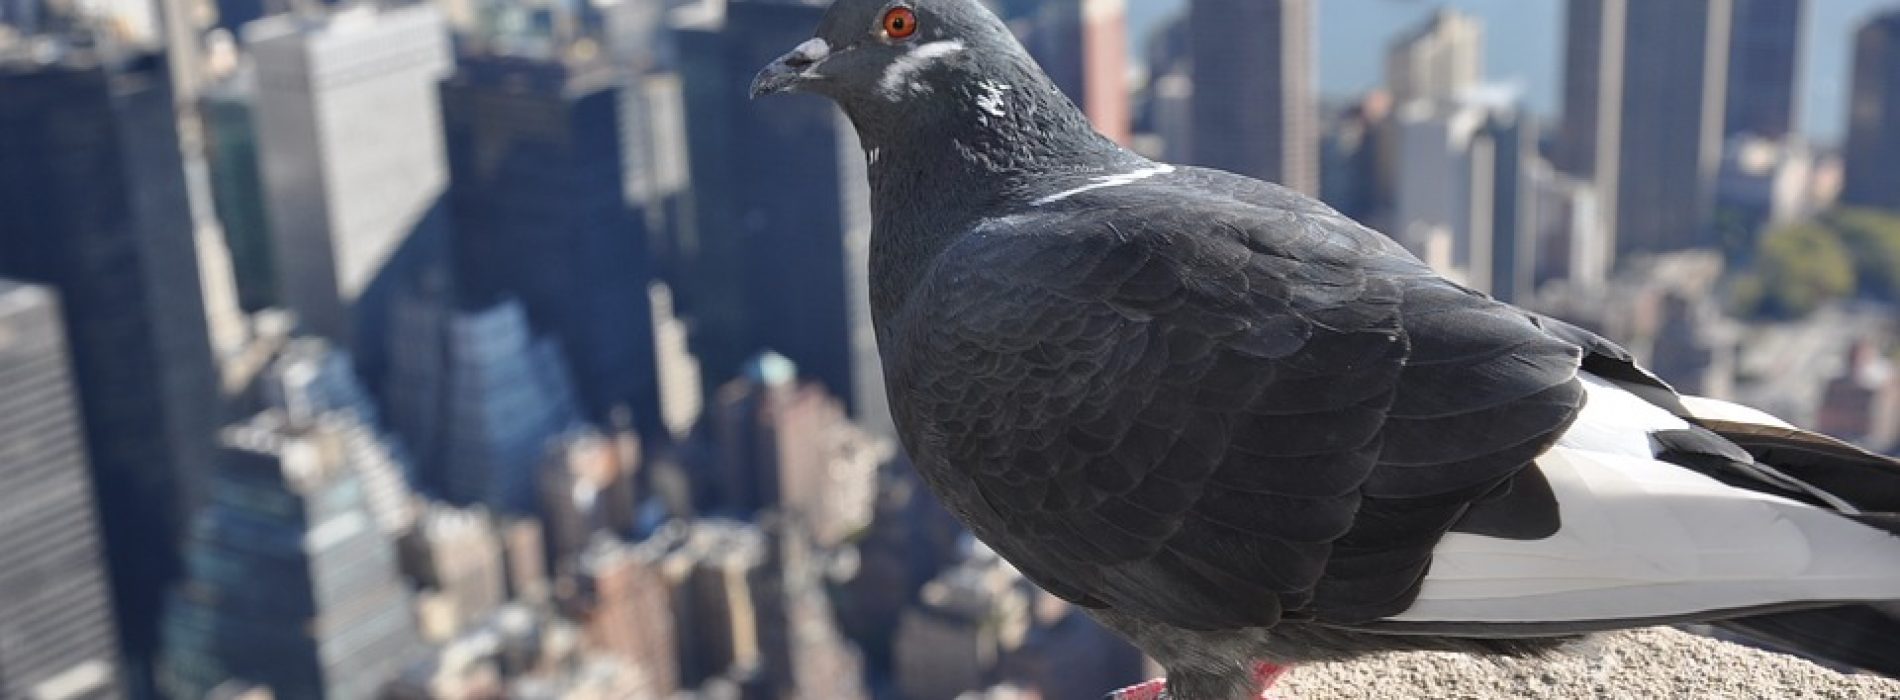 Fancypants City Birds are Smarter than Country Birds